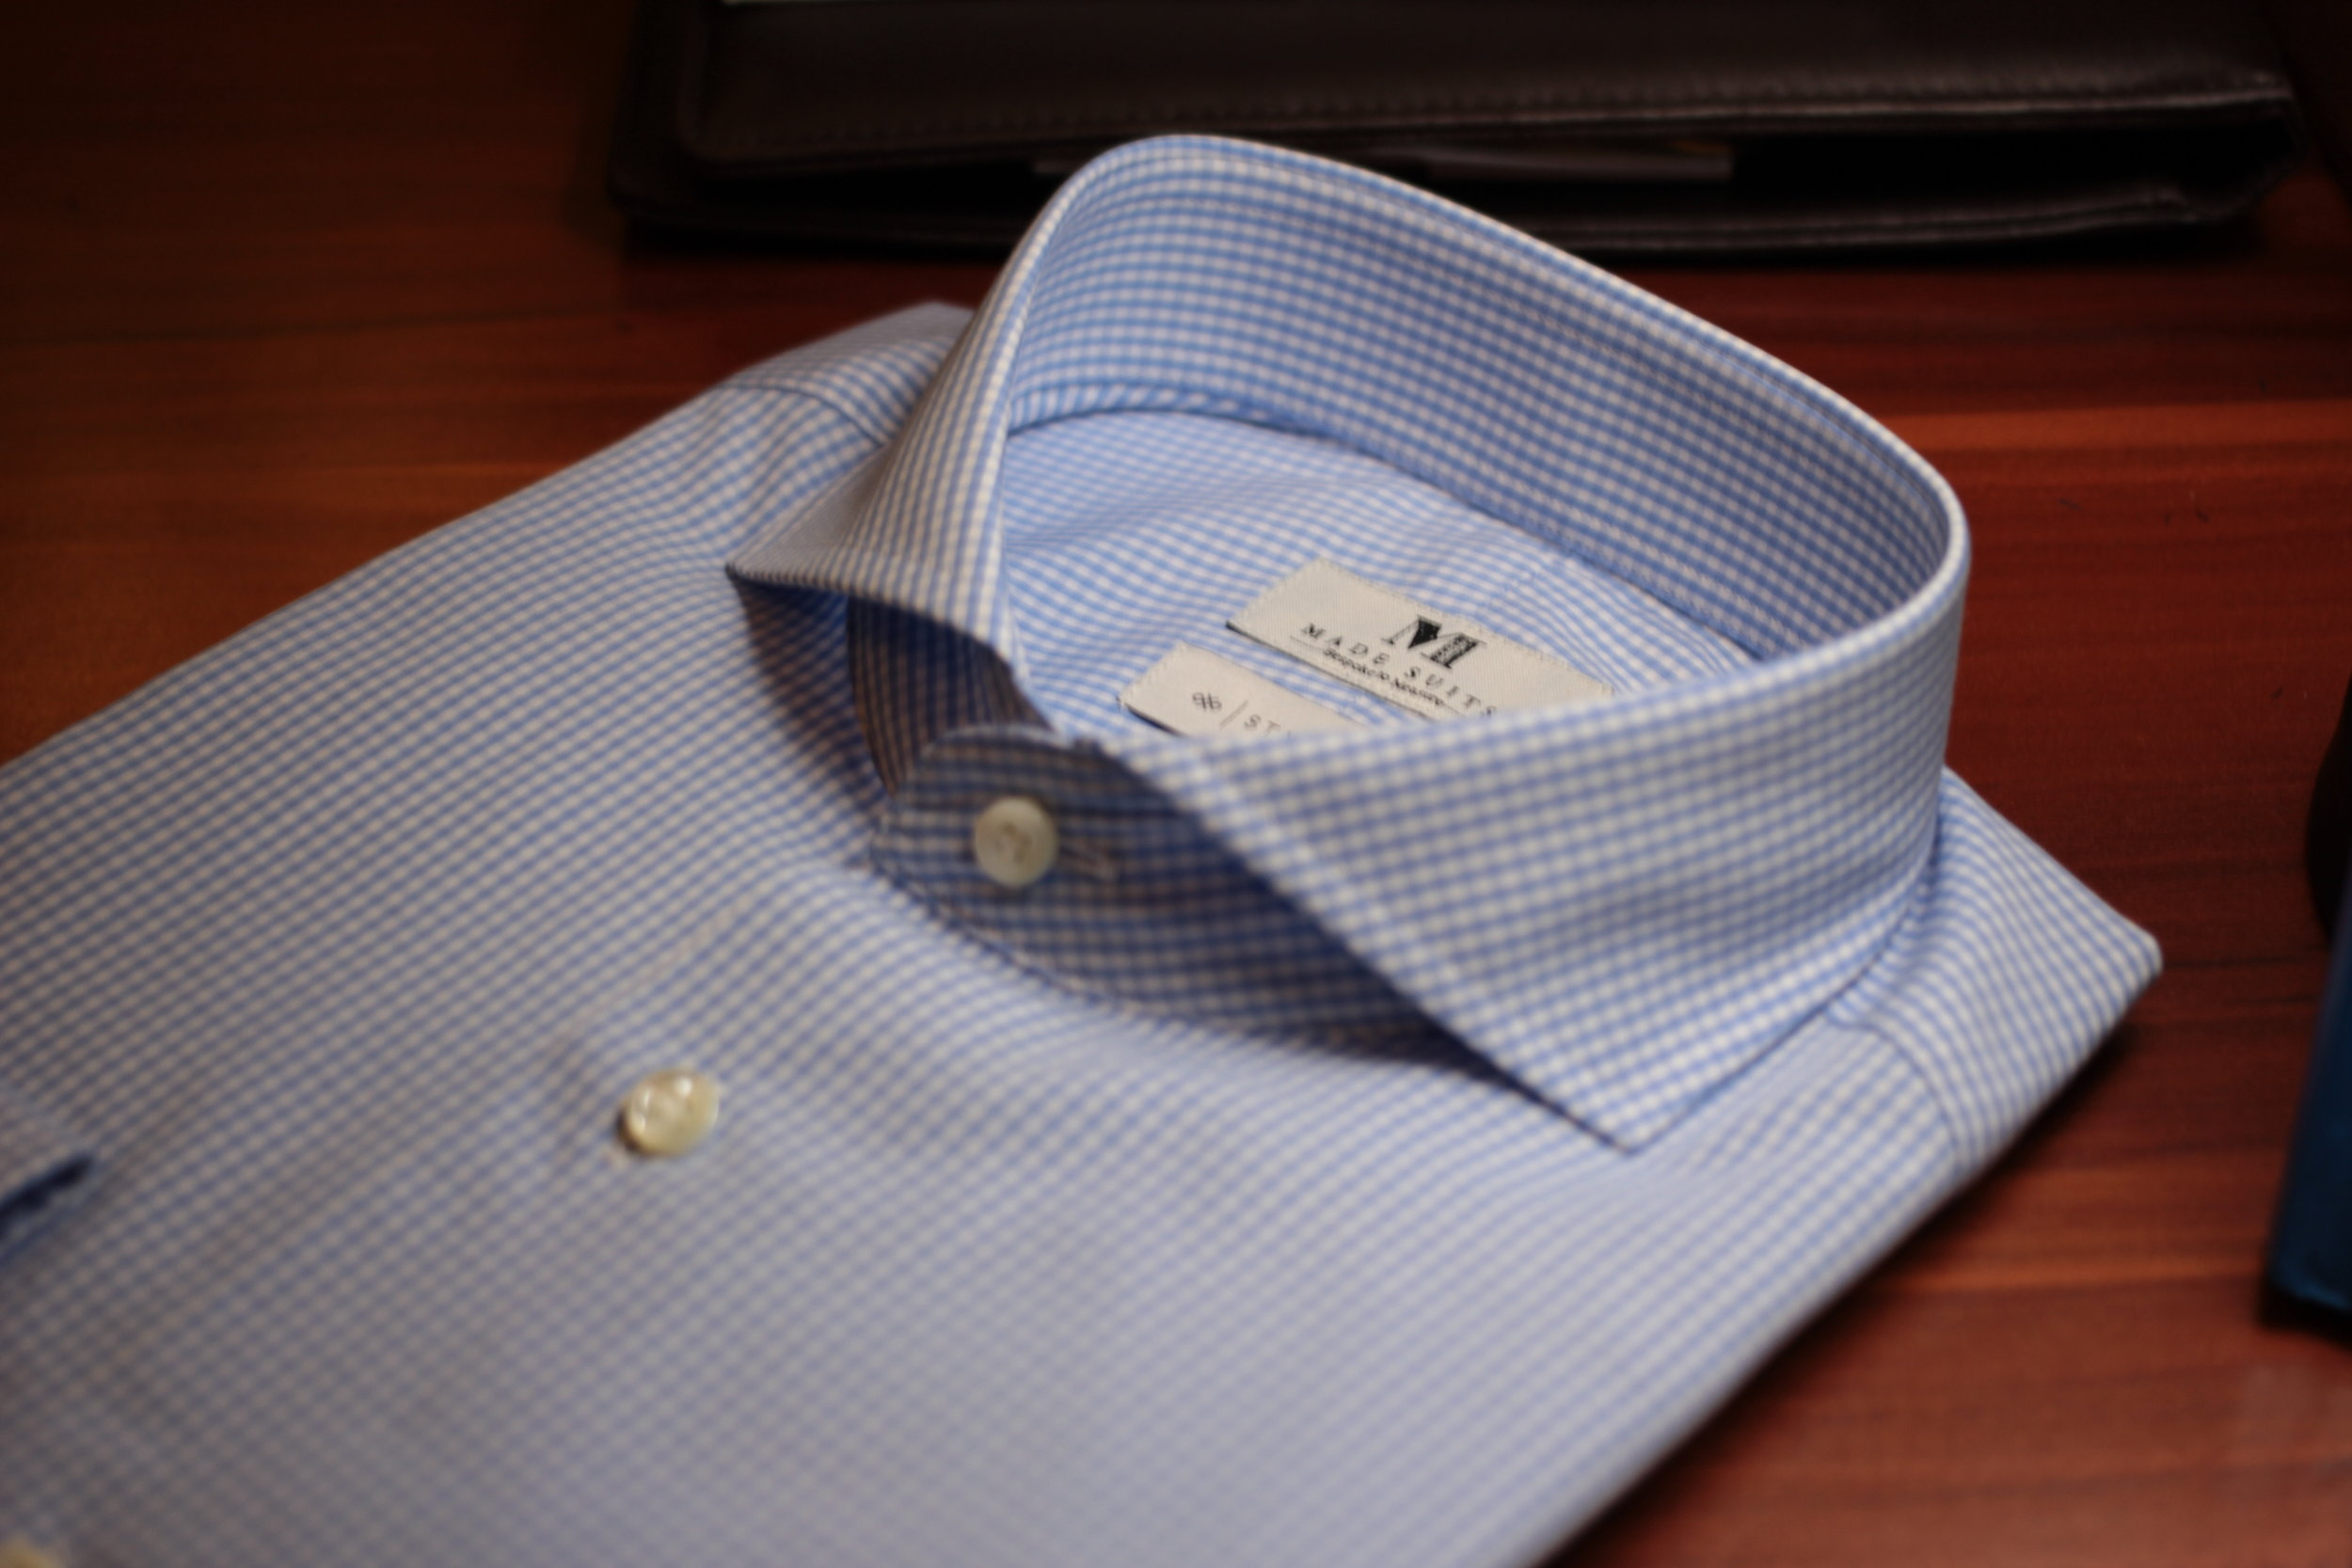 Blue Gingham Checks Stylbiella | Made Suits Shirts | Made to measure Shirts collar.JPG